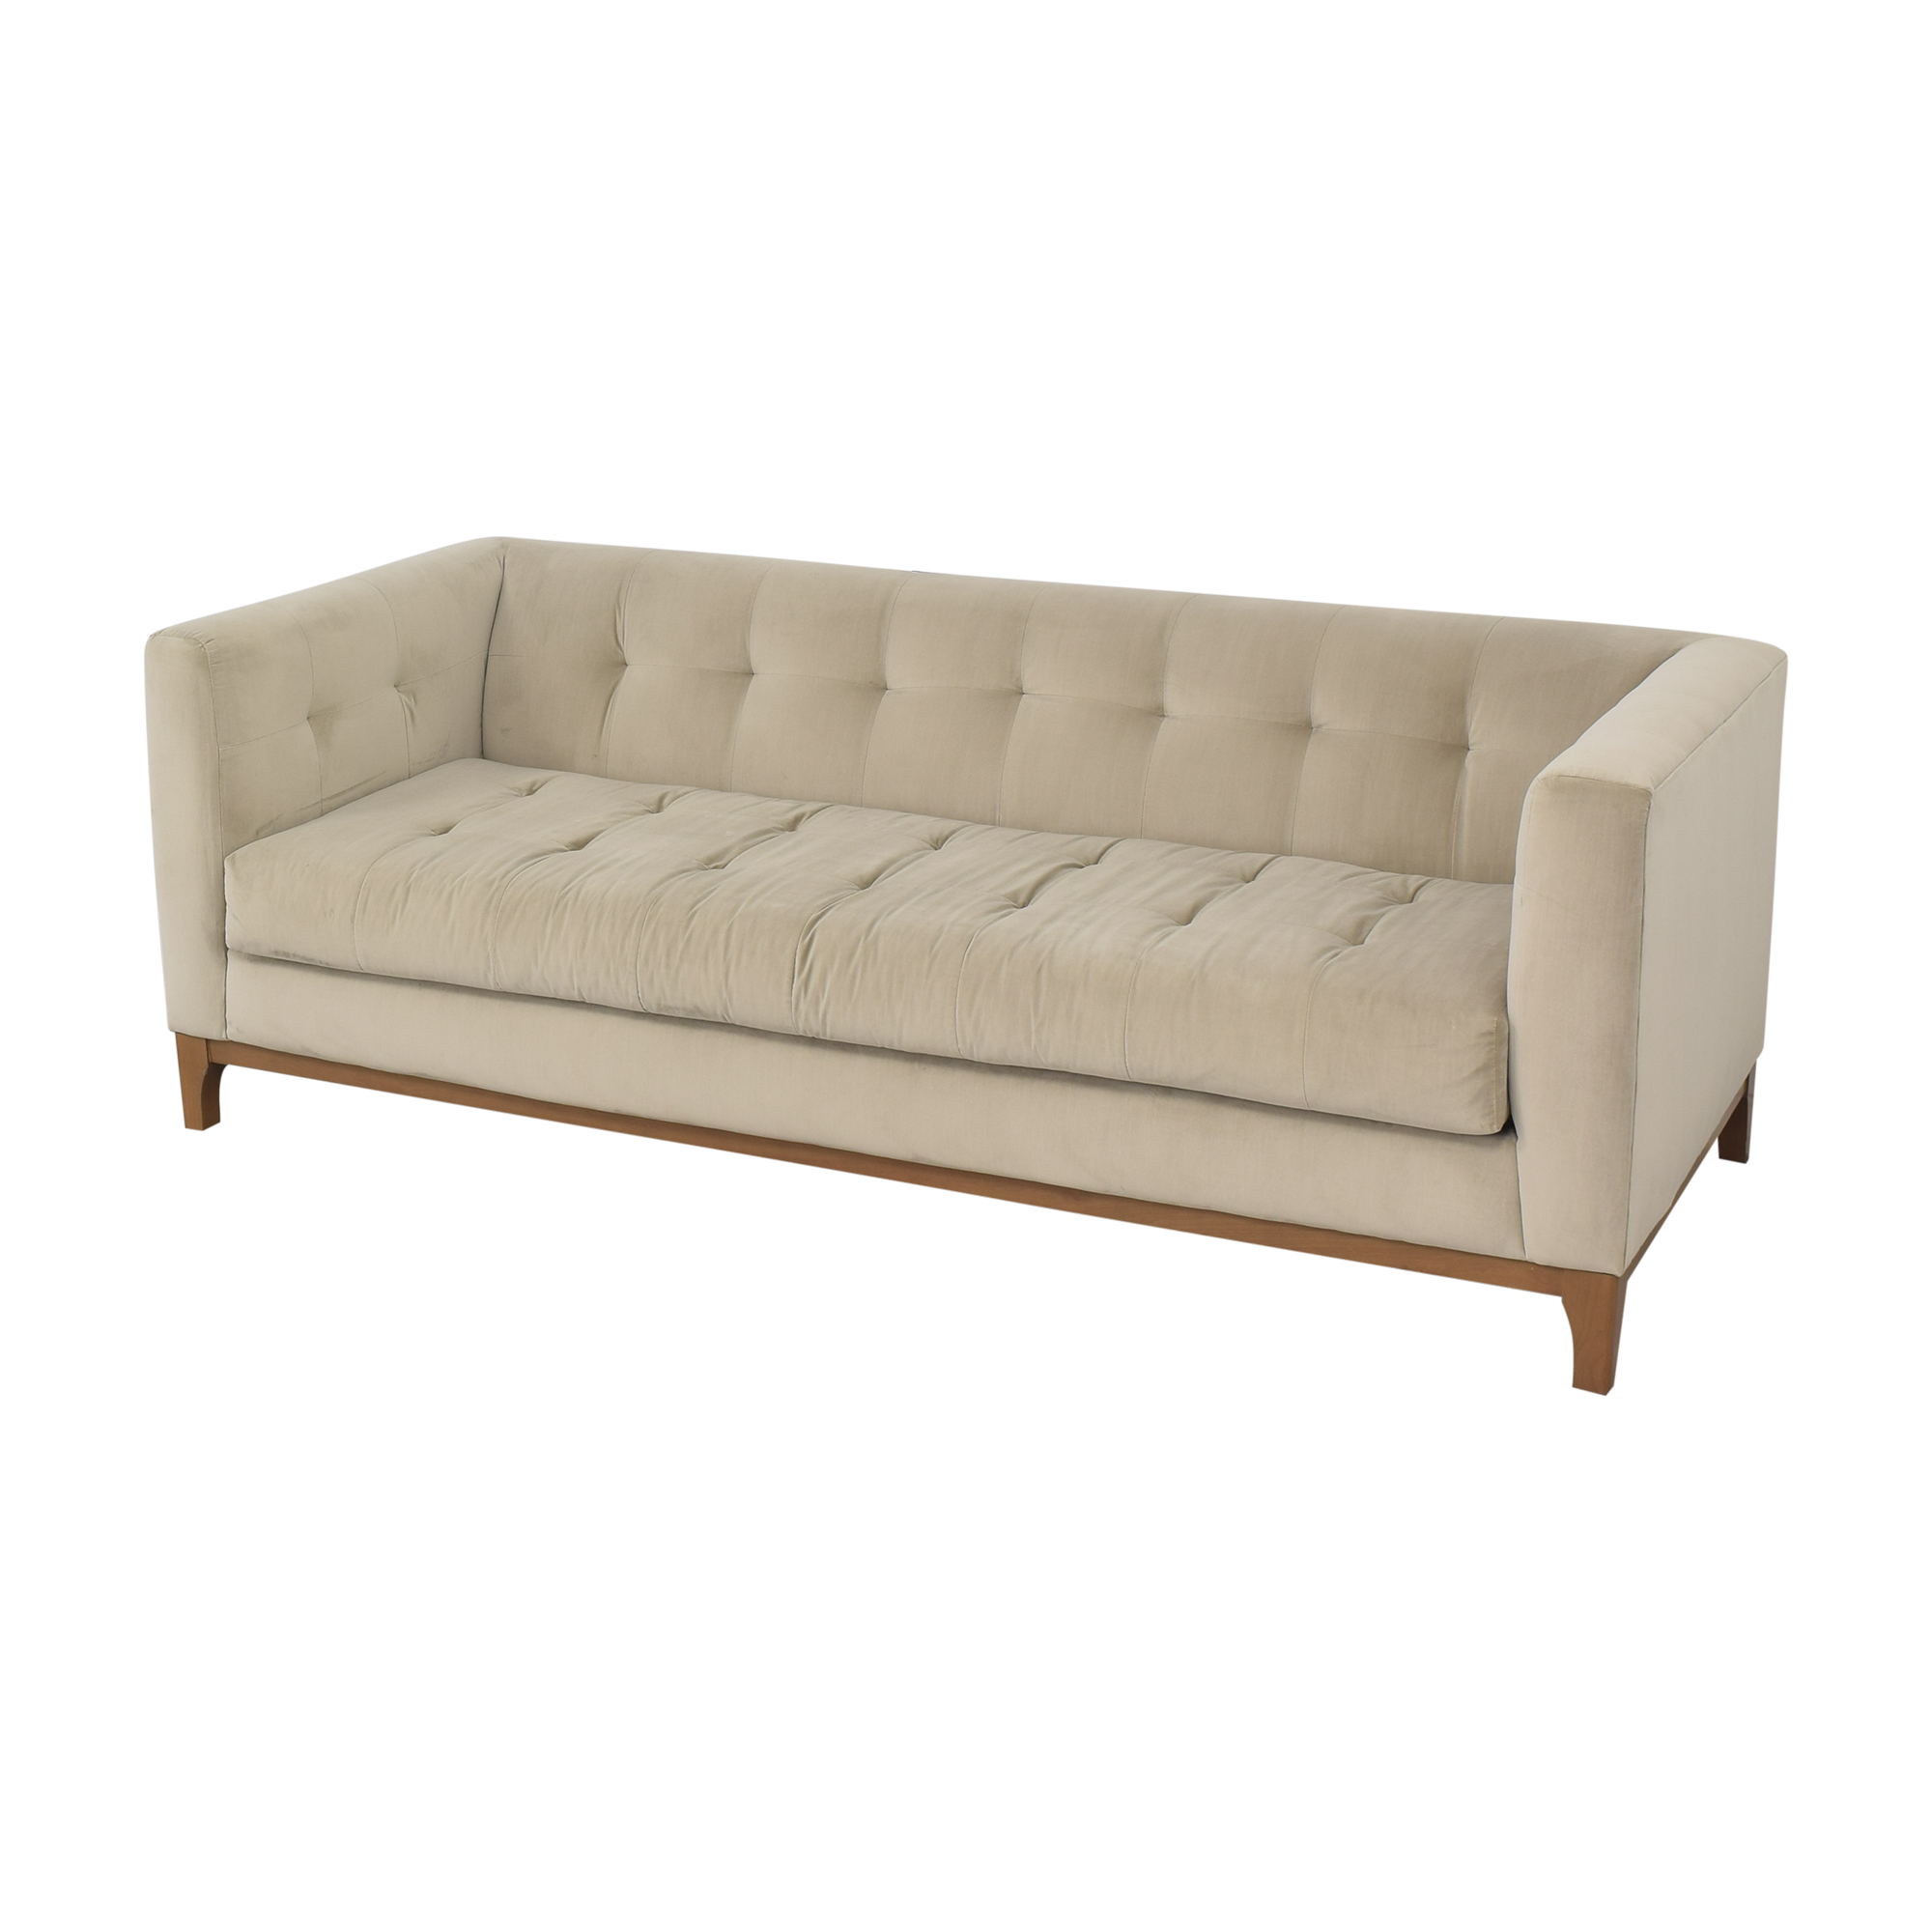 Macy's Macy's Martha Stewart Collection Brookline Sofa nyc